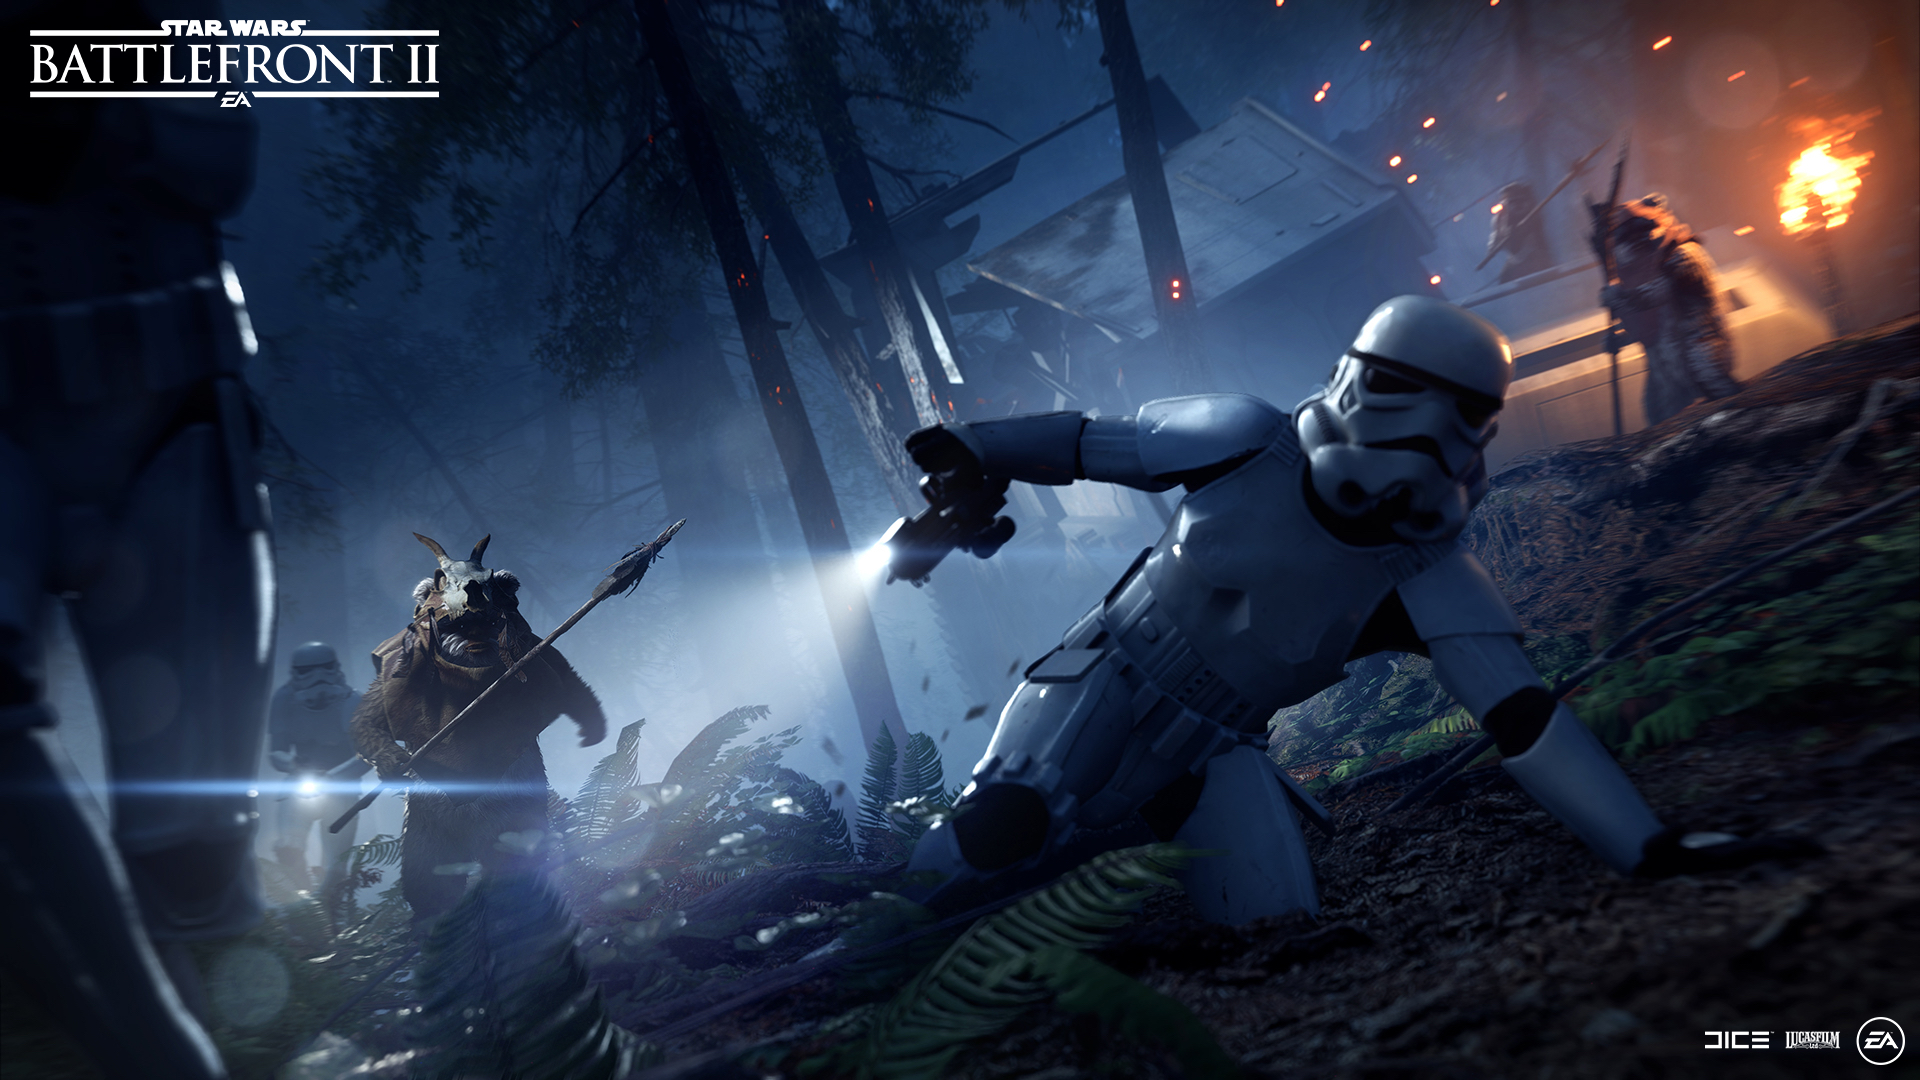 Star Wars Battlefront Ii Rise Of Skywalker Full Update Notes